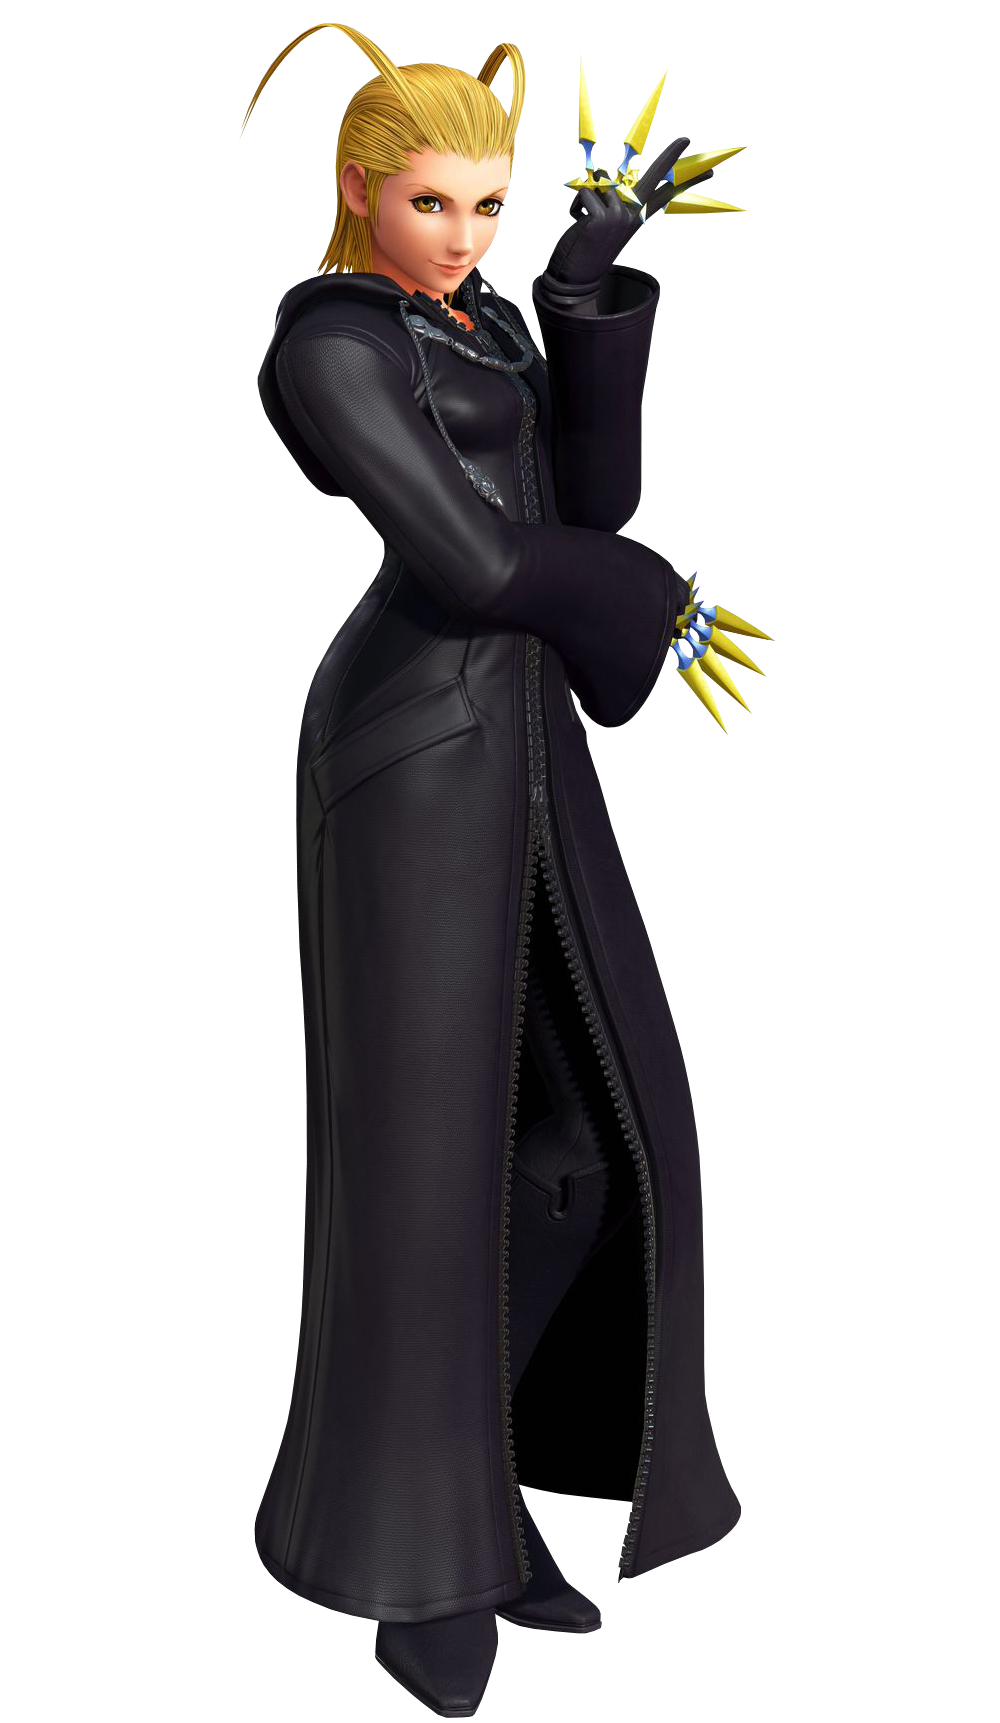 Larxene Kingdom Hearts Wiki Fandom Larxene page 1 of 2 • 1 2 • next >>. larxene kingdom hearts wiki fandom